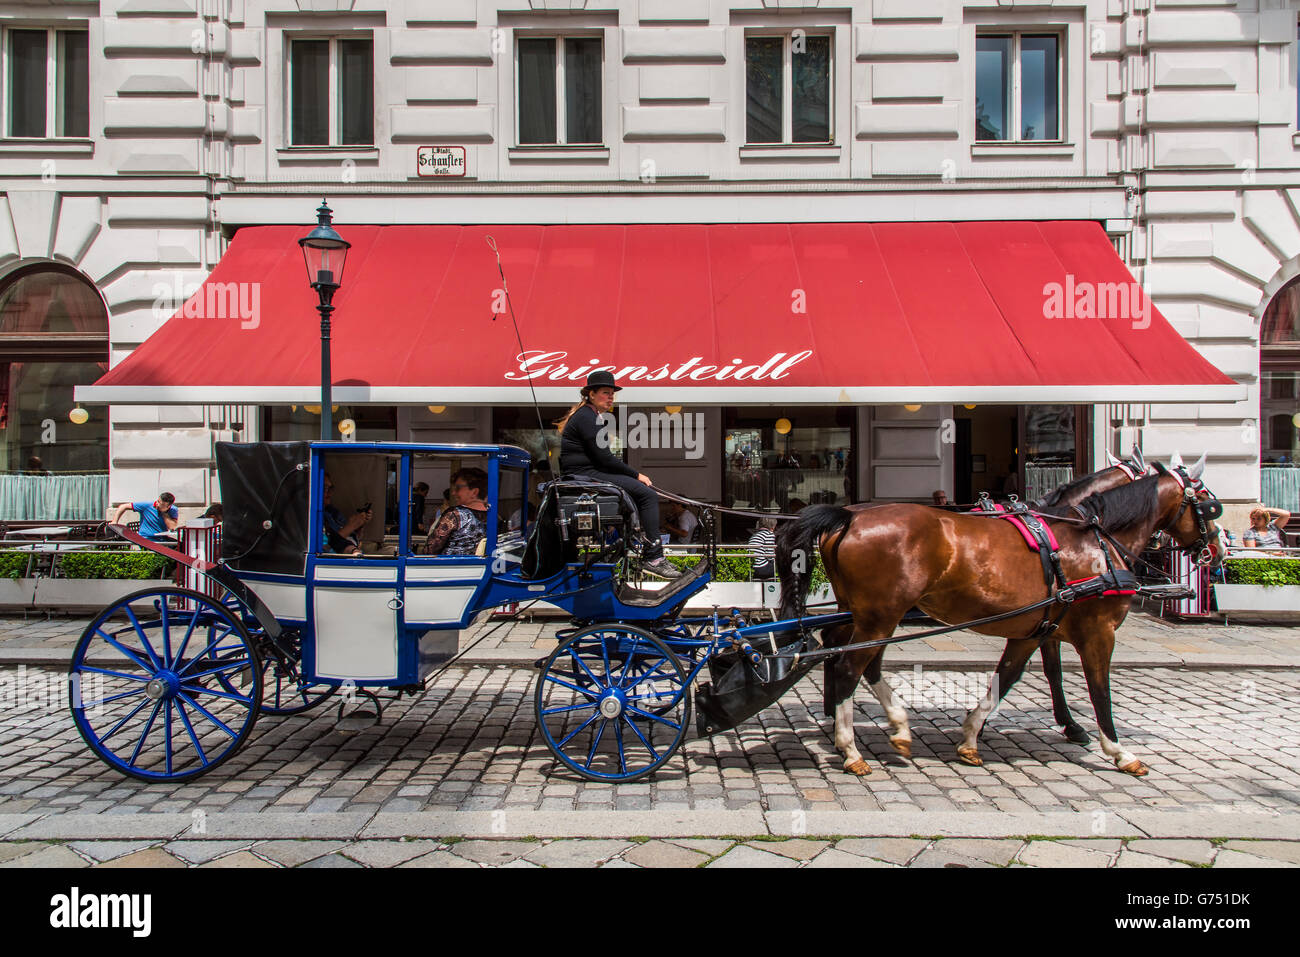 Horse carriage in the historic centre of Vienna, Austria - Stock Image